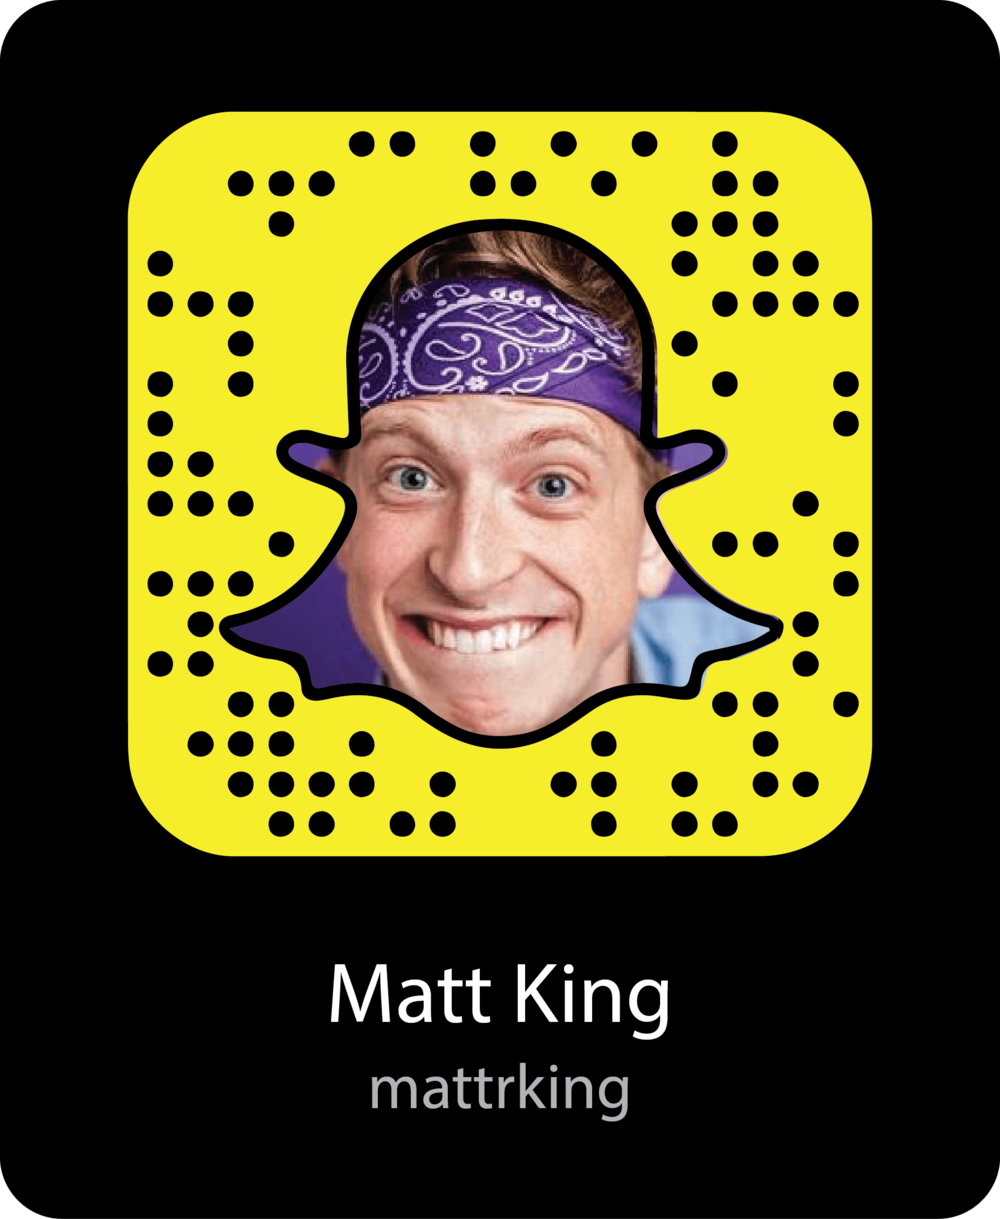 matt-king-comedians-snapchat-snapcode